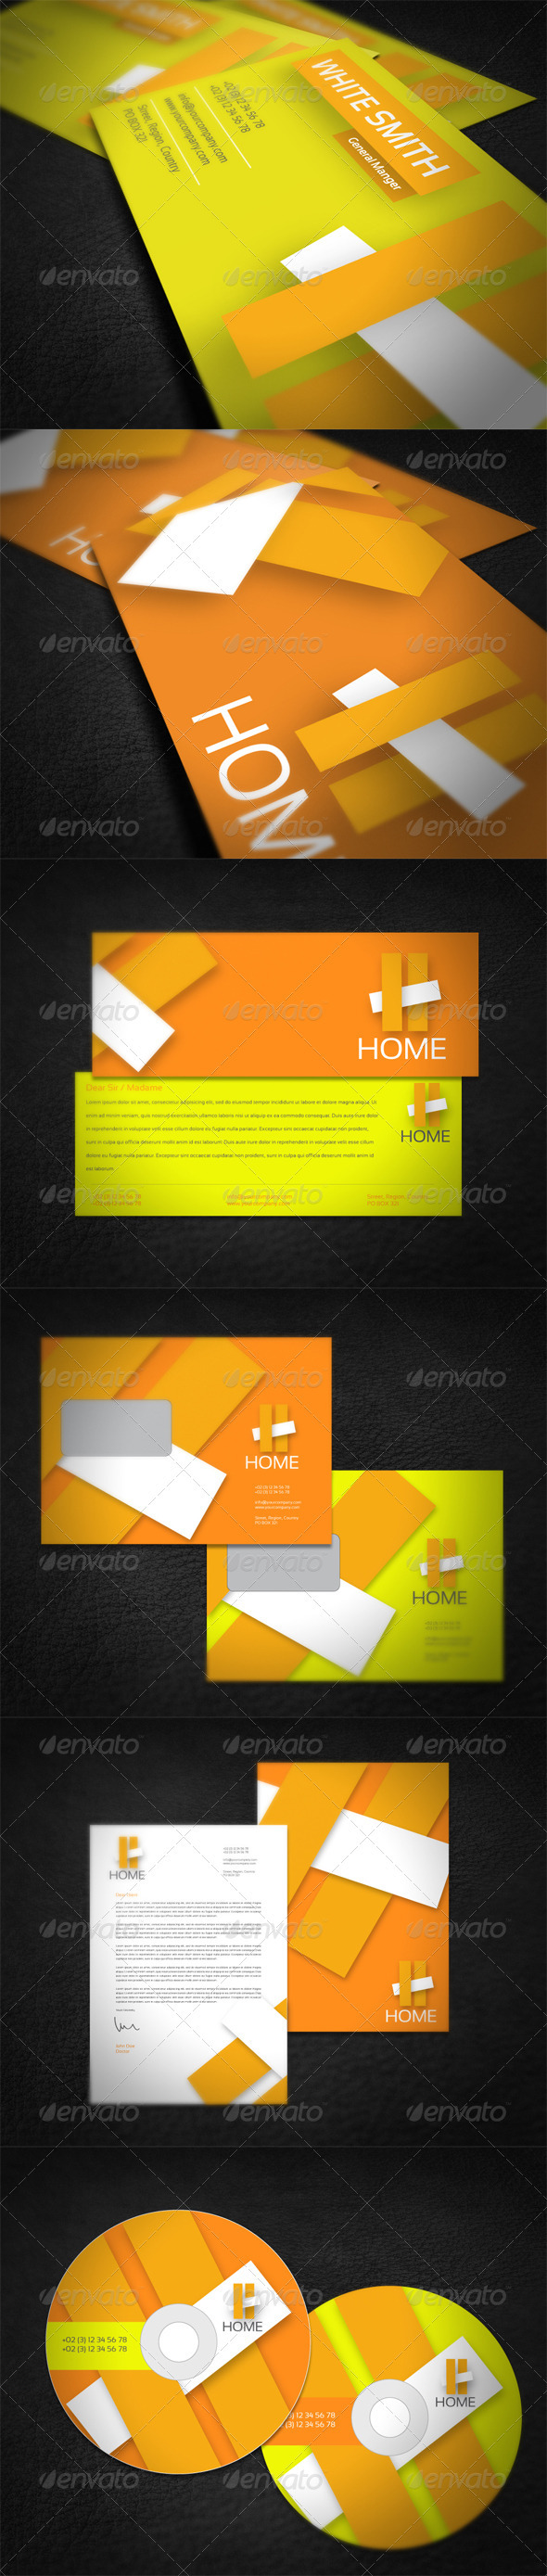 Home Company Corporate Identity  - Stationery Print Templates